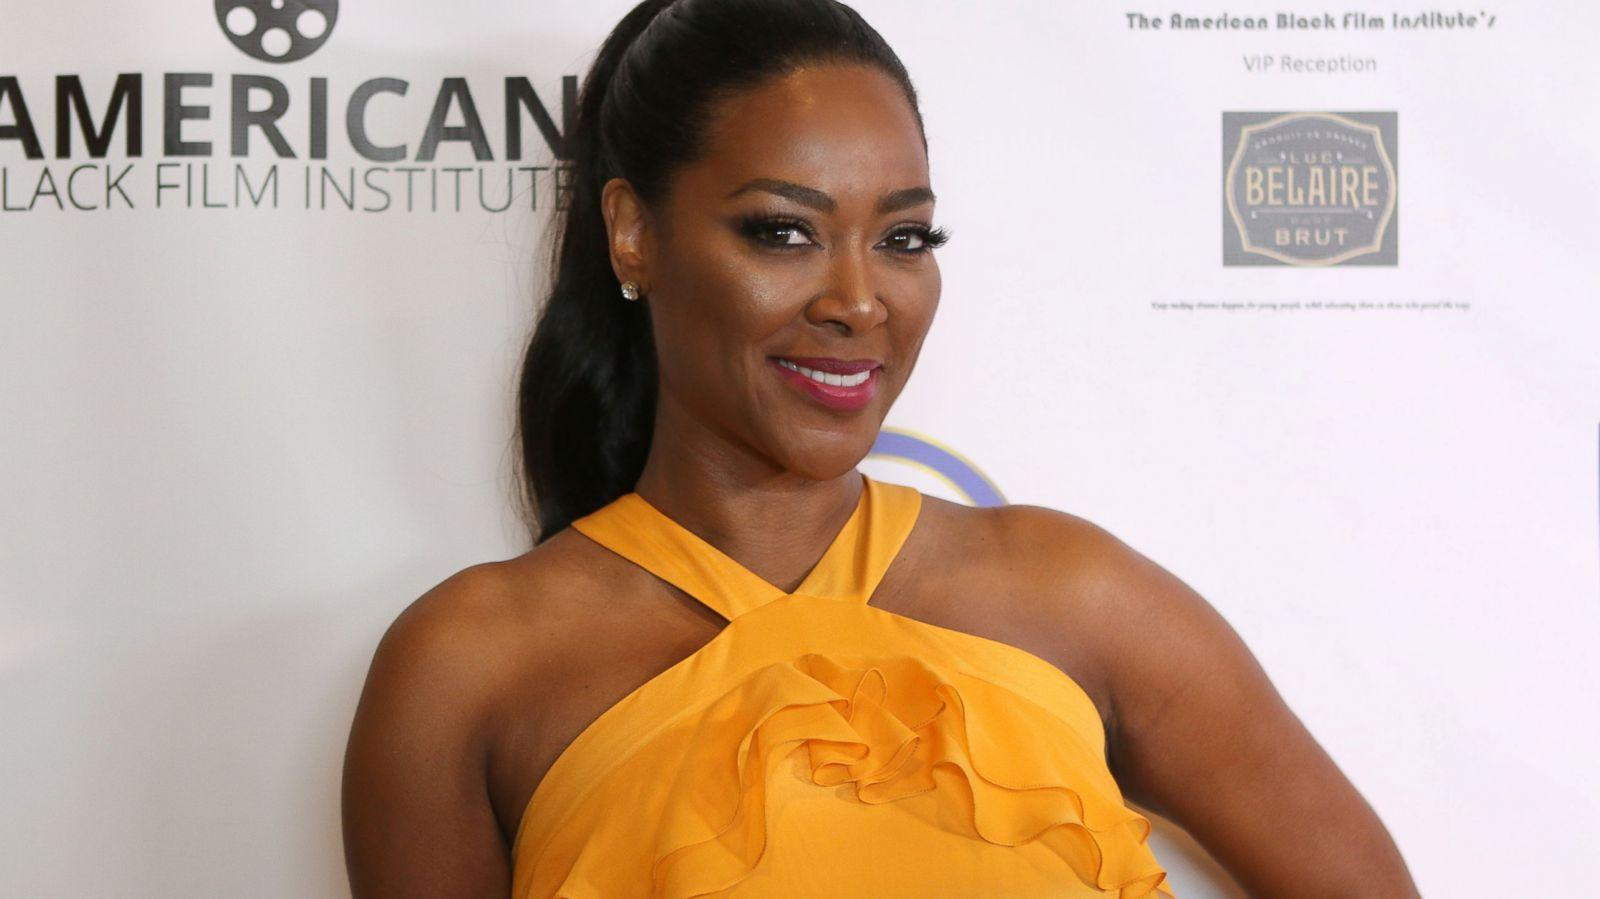 Kenya Moore Looks Amazing In This Blue Outfit - Check Out The Latest Pics